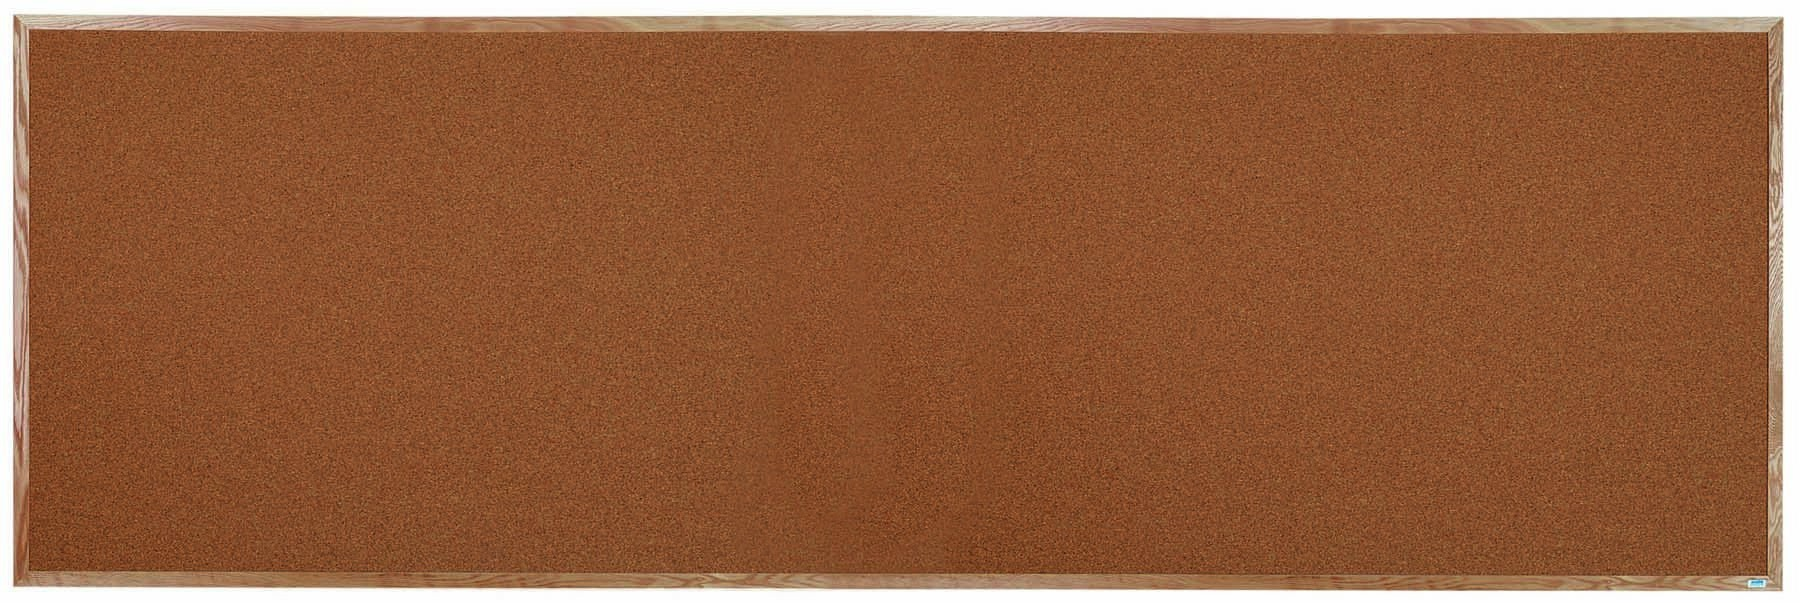 "Aarco Products OB48144 Natural Pebble Grain Cork Bulletin Board with Red Oak Frame 48""H x 144""W"